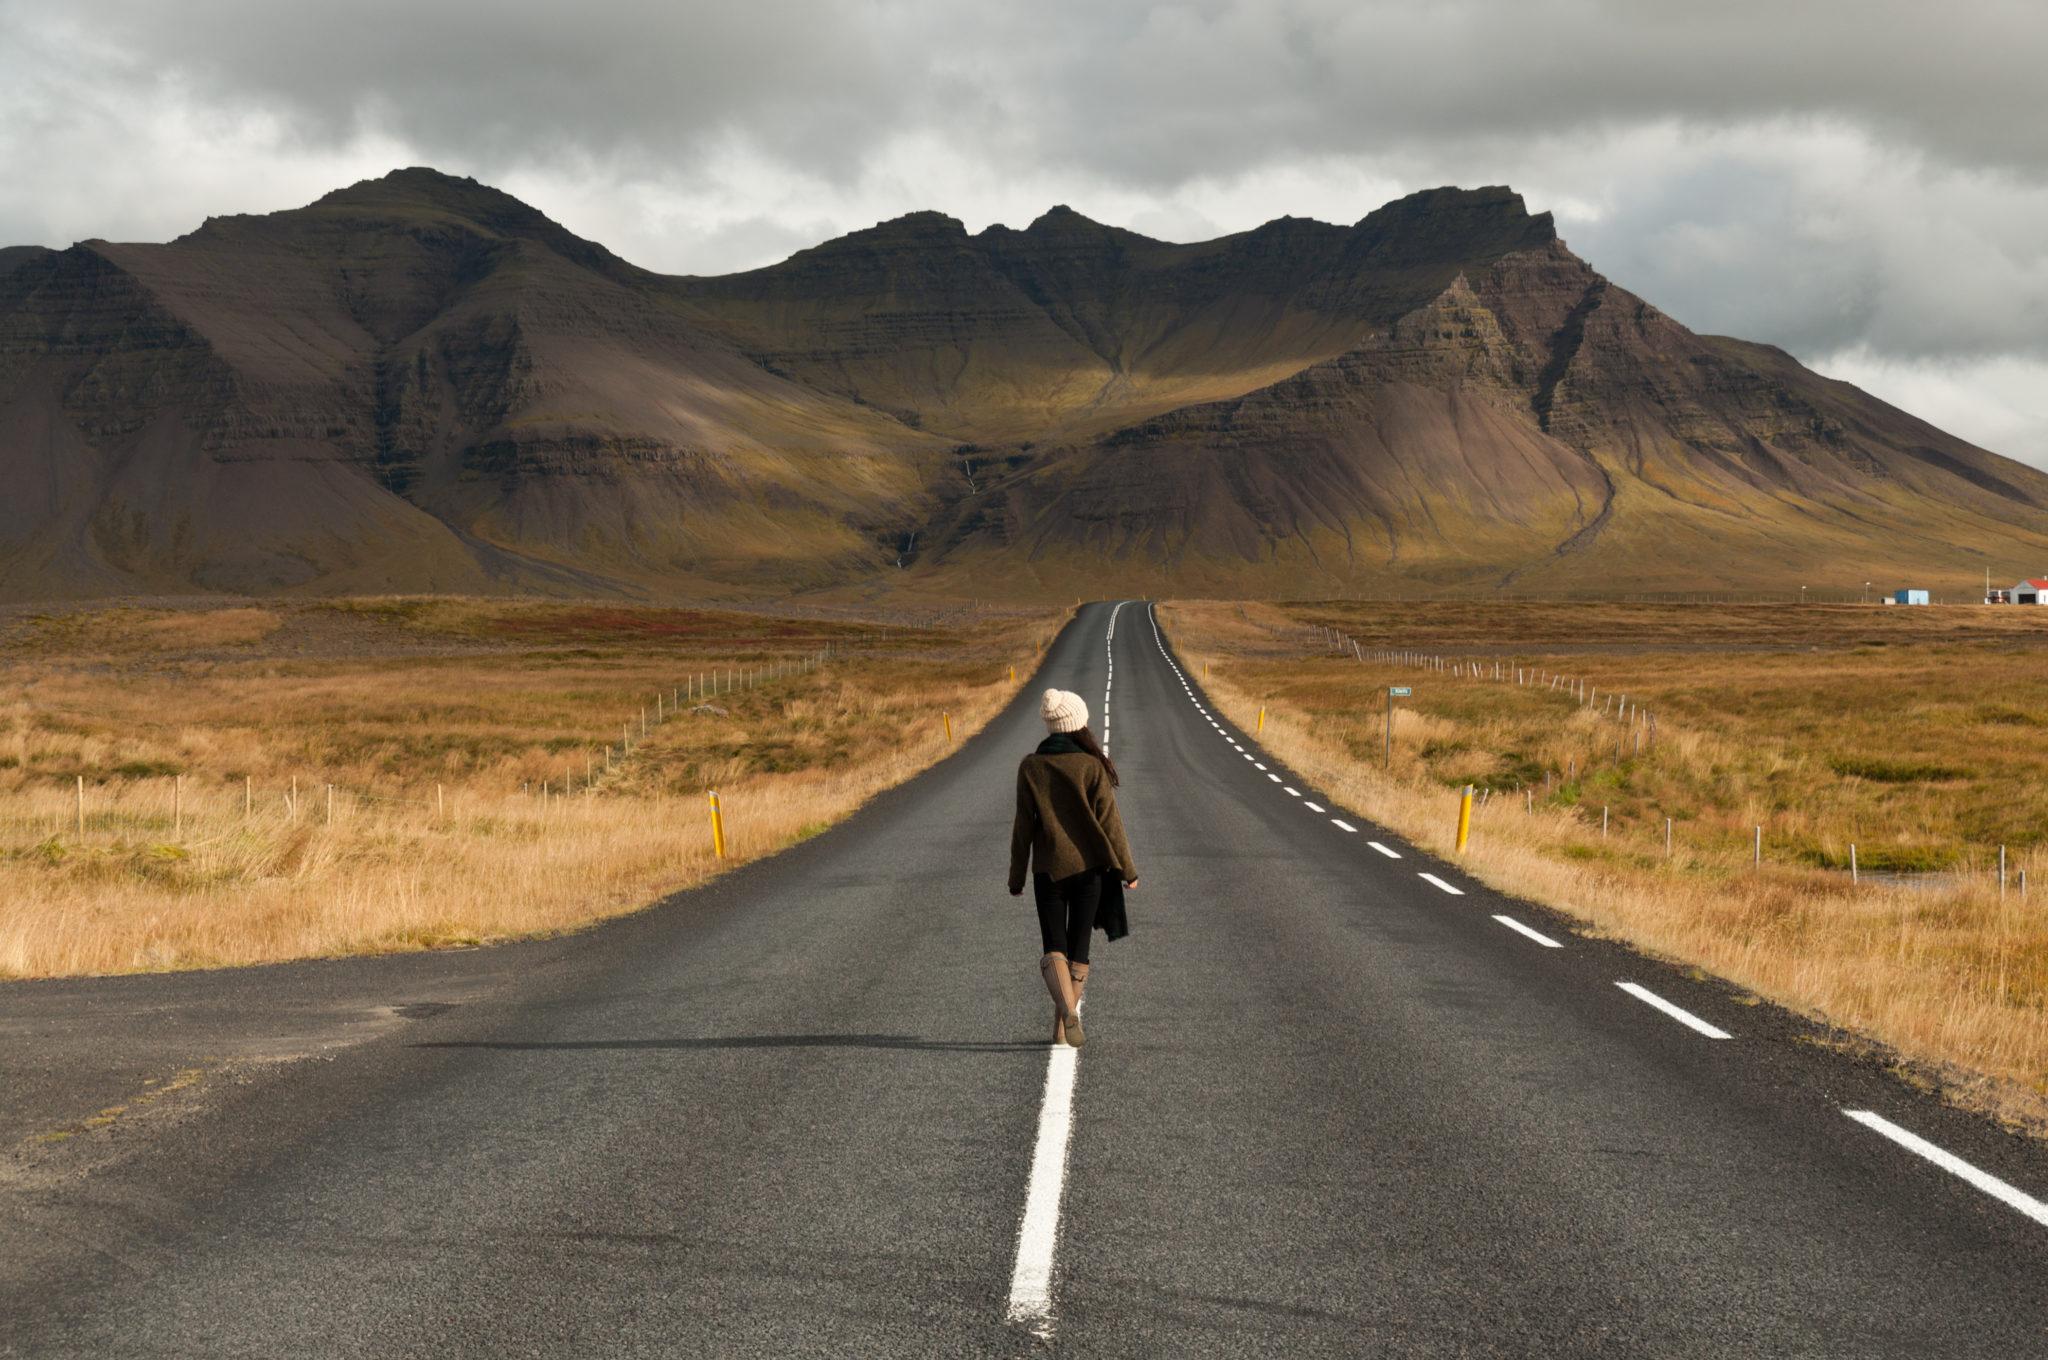 How to Sustain Through Times of Change - Embrace the uncharted territory